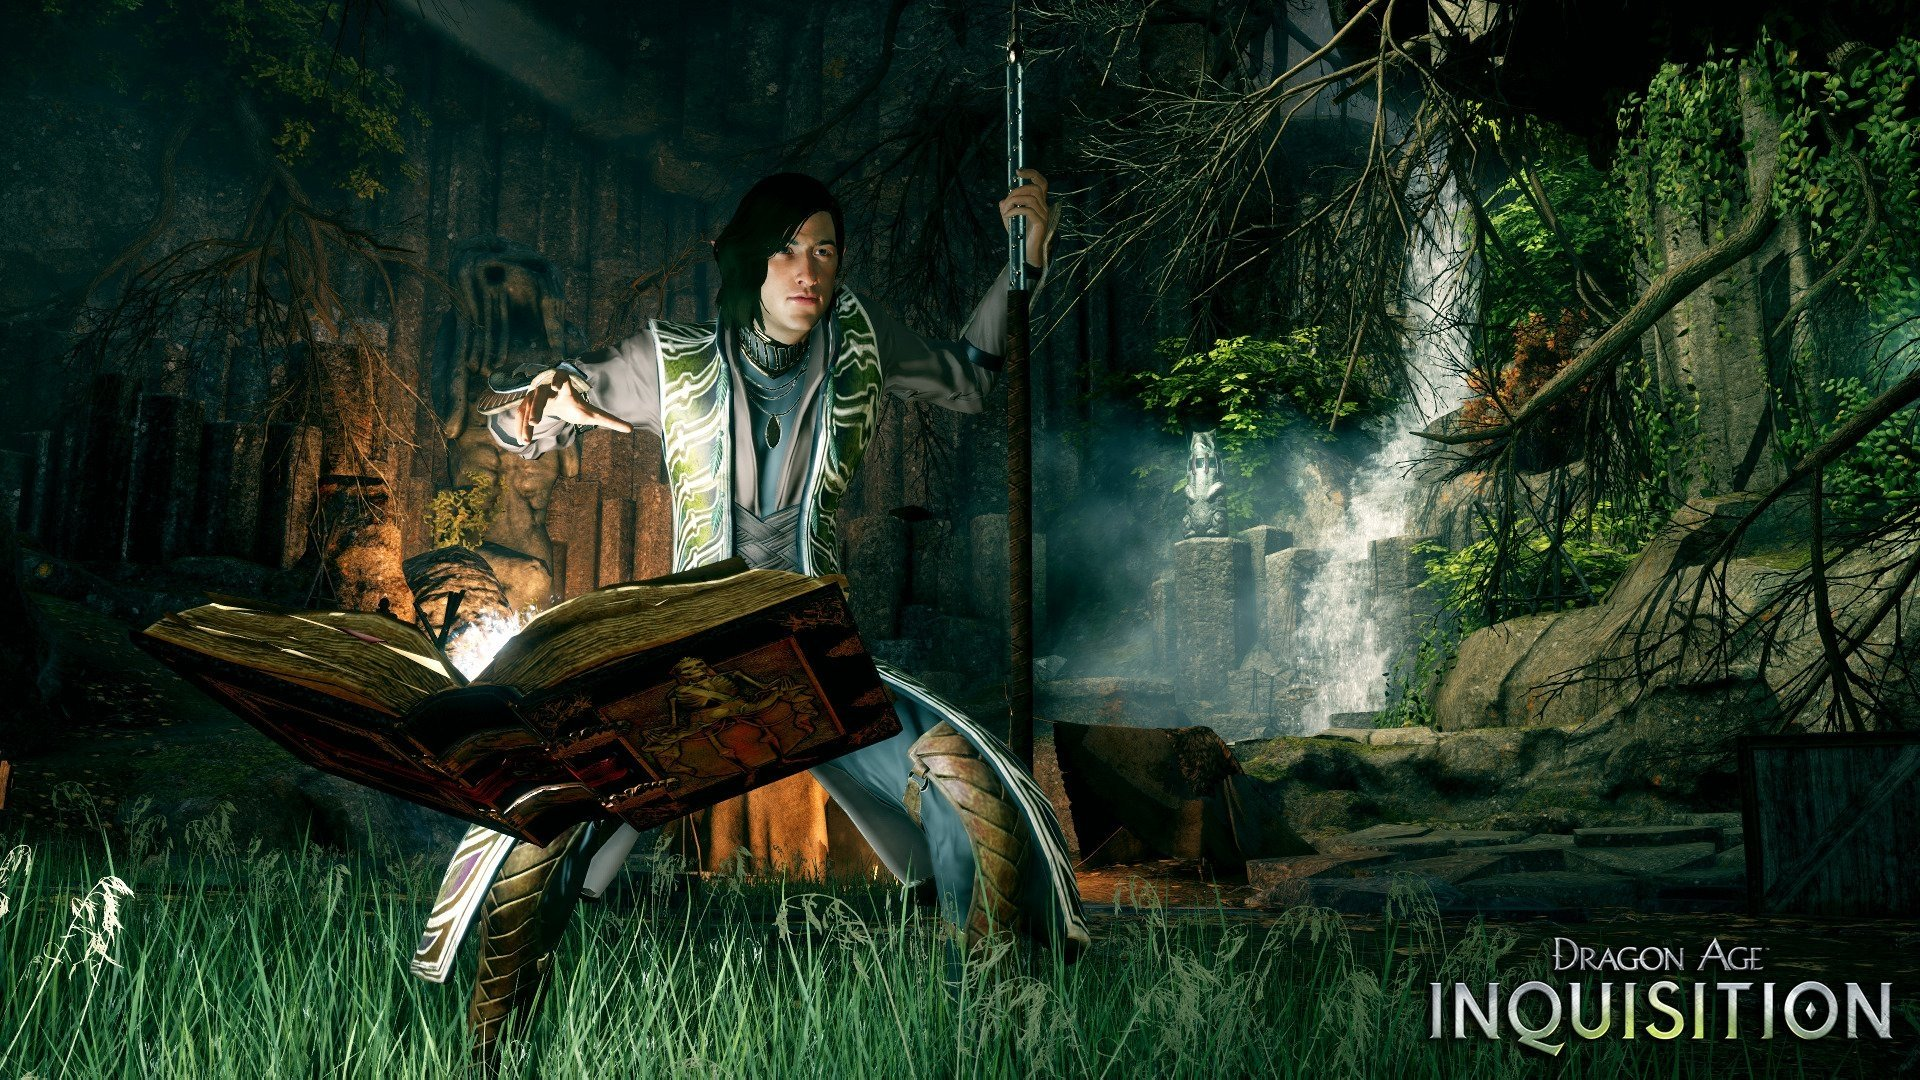 Dragon Age Inquisition Hd Wallpaper Background Image